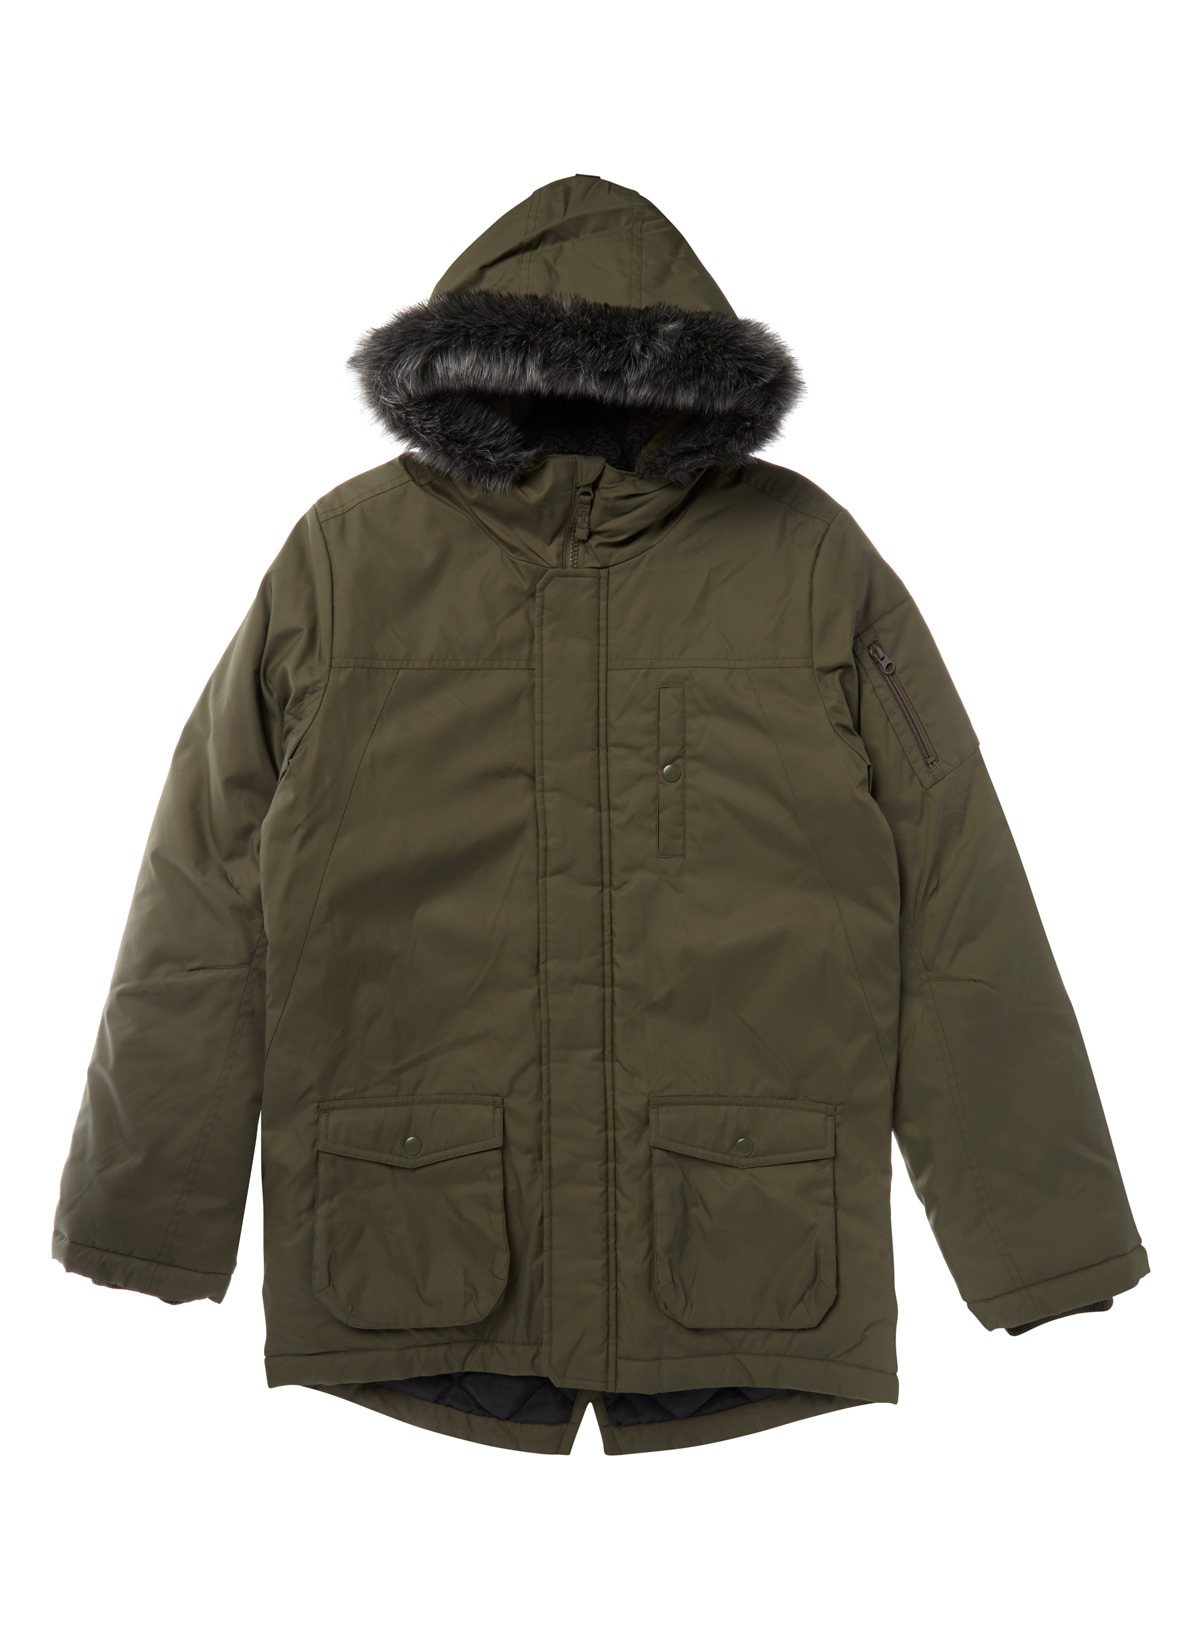 Kids Khaki Parka Jacket (3-14 years) | Tu clothing